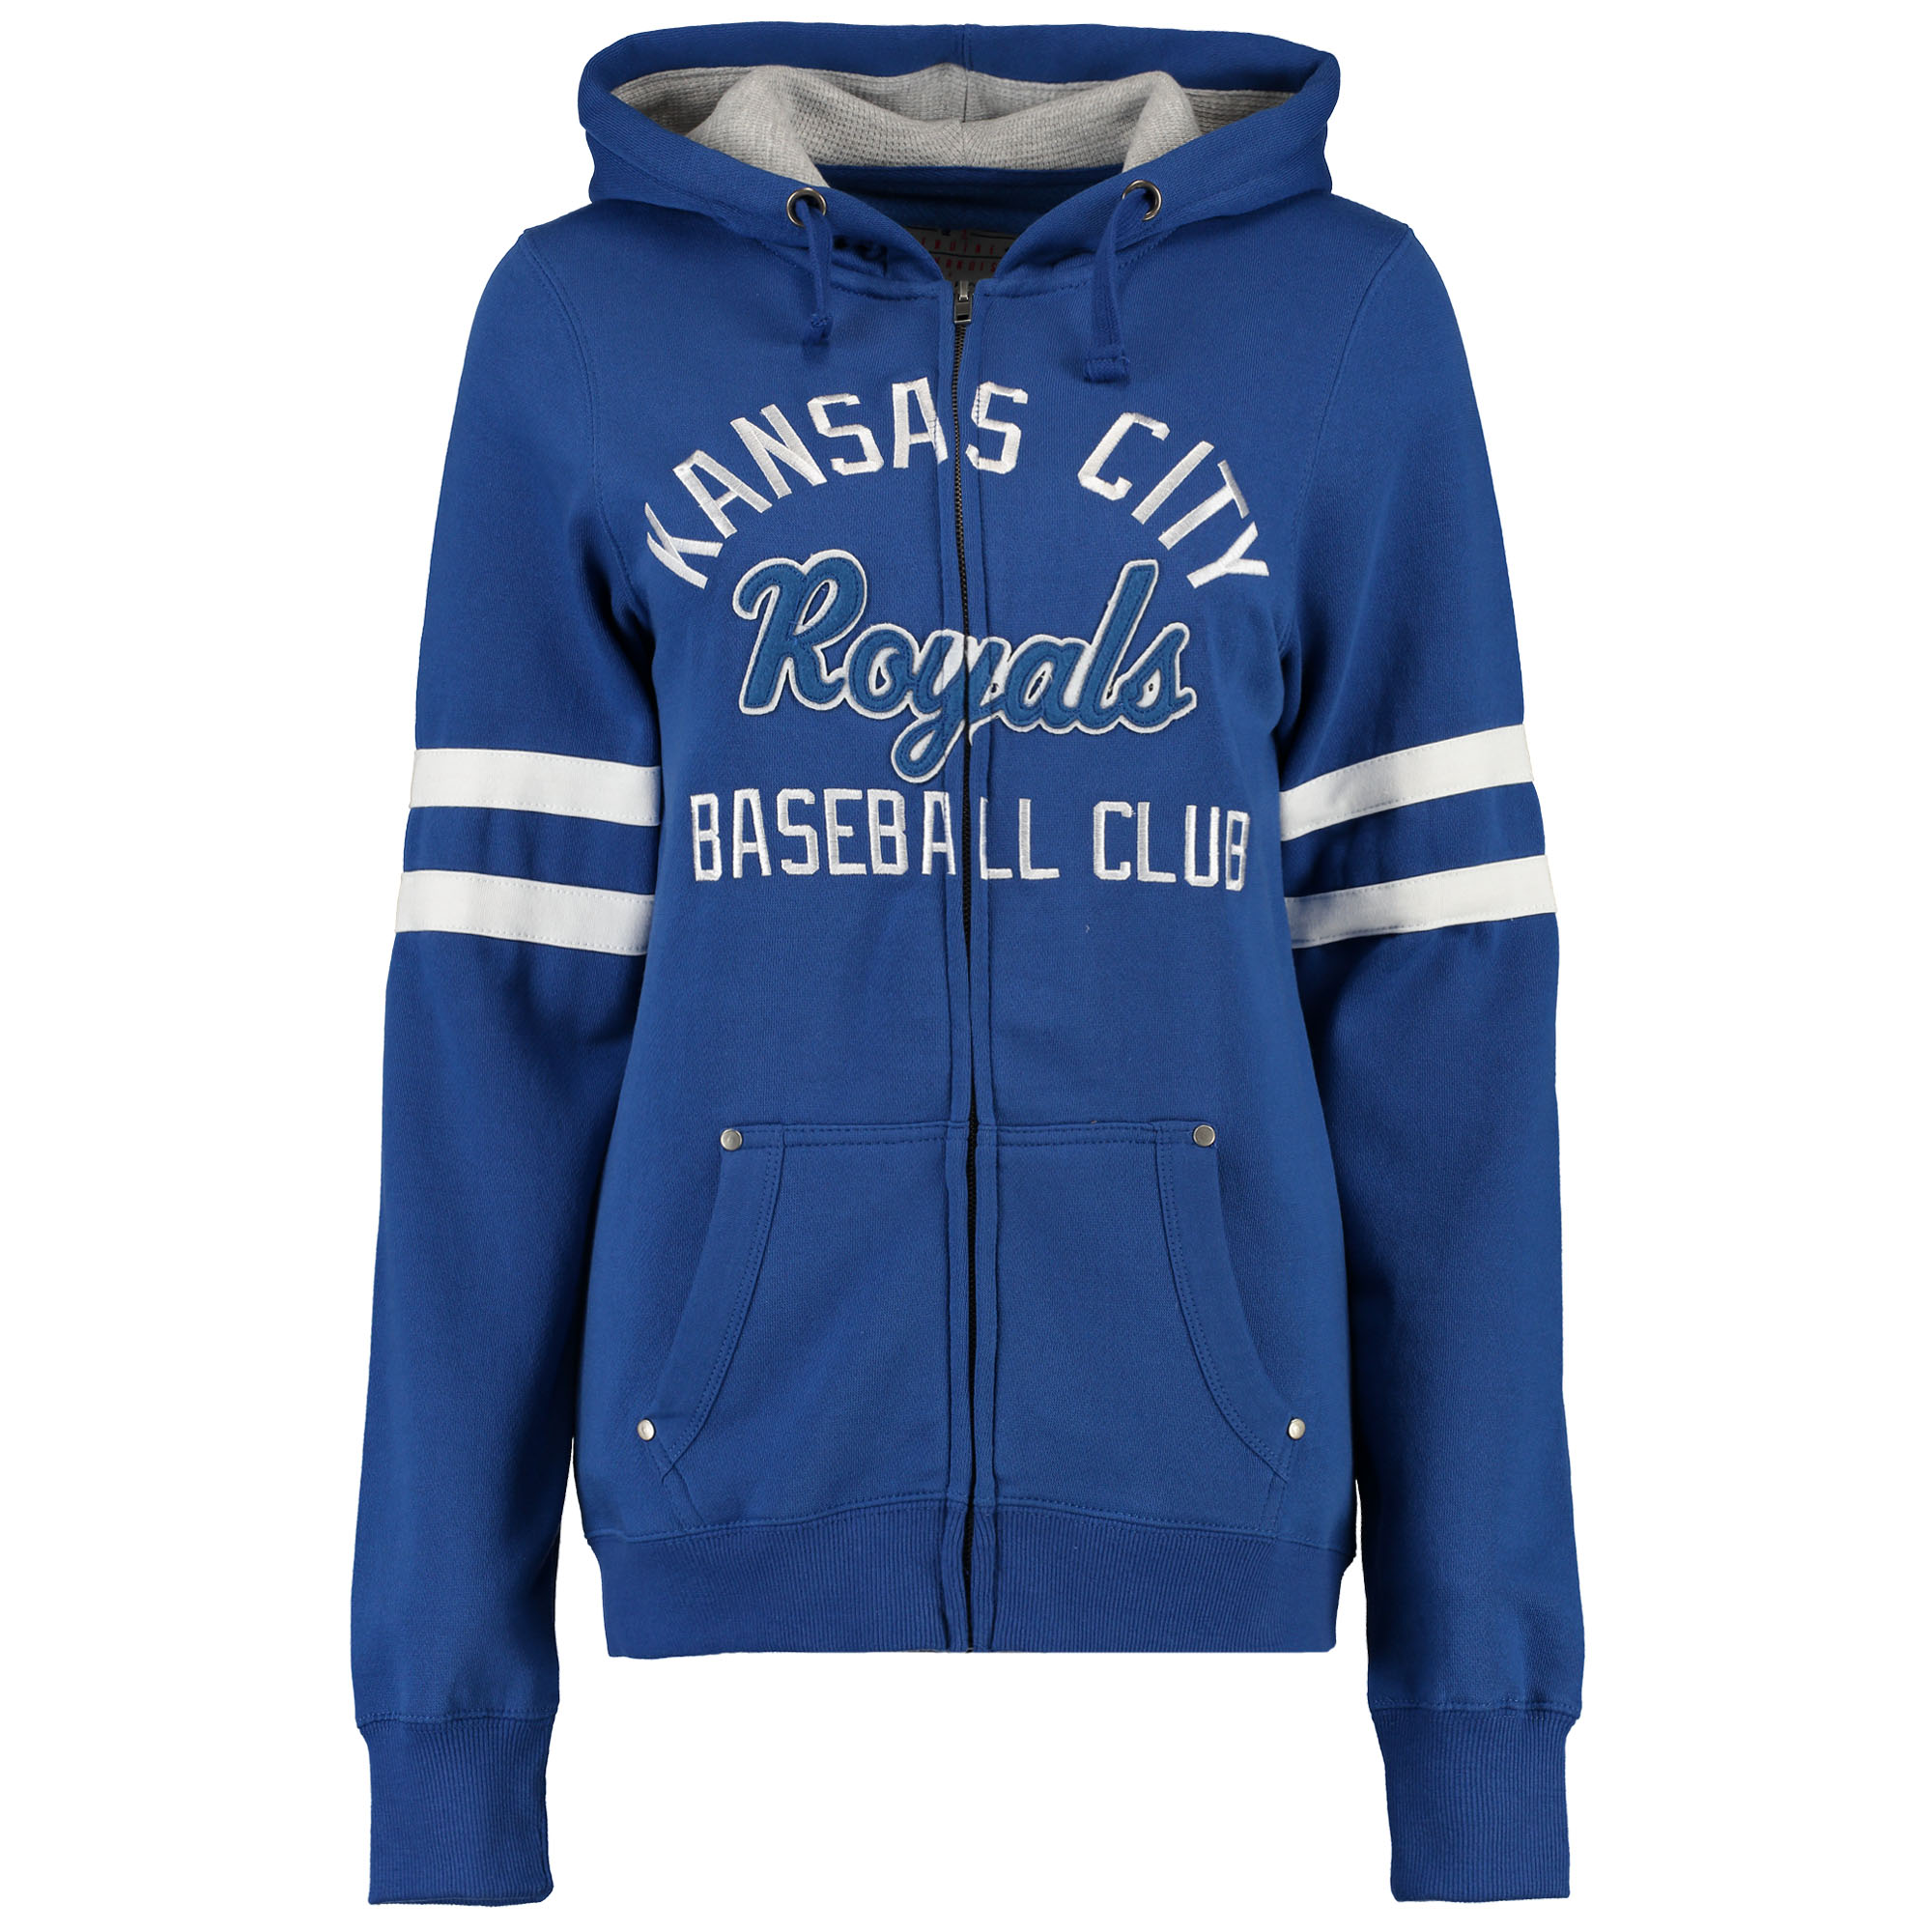 Kansas City Royals Soft as a Grape Women's Umpire Full-Zip Hoodie with Sleeve Stripes - Royal